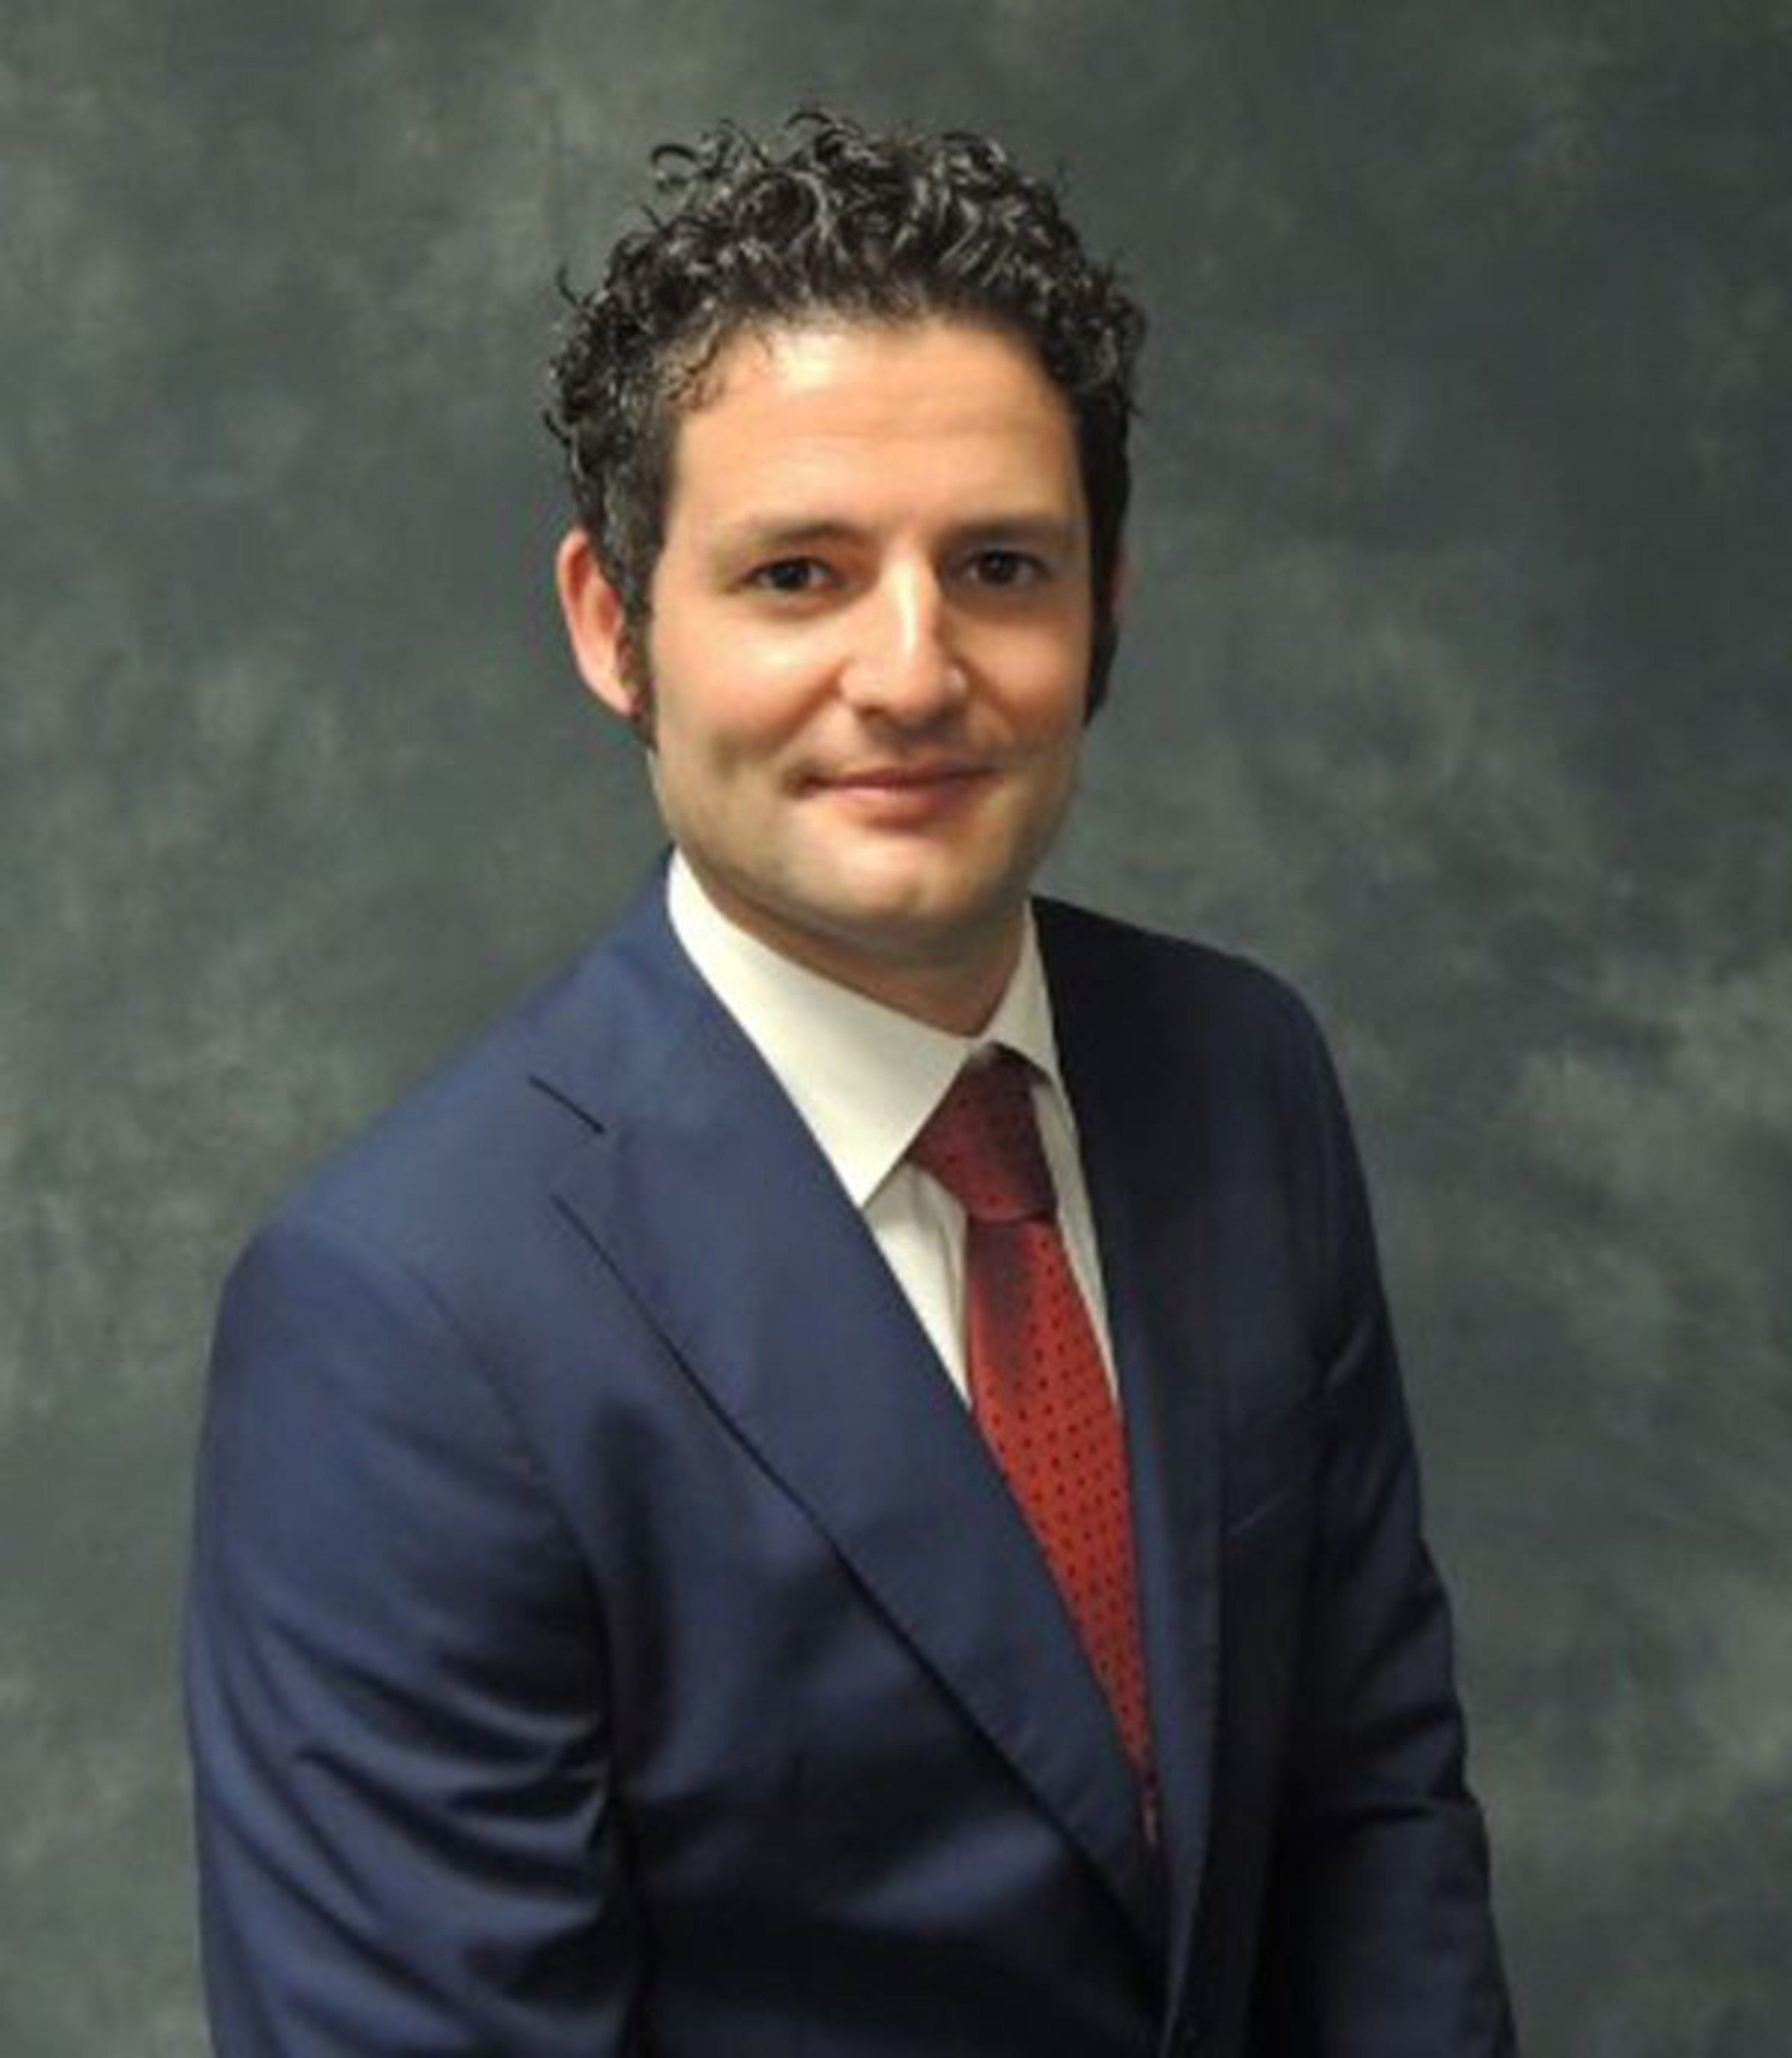 Claudio Lollini, KEMET Senior Vice President of Global Sales & Marketing